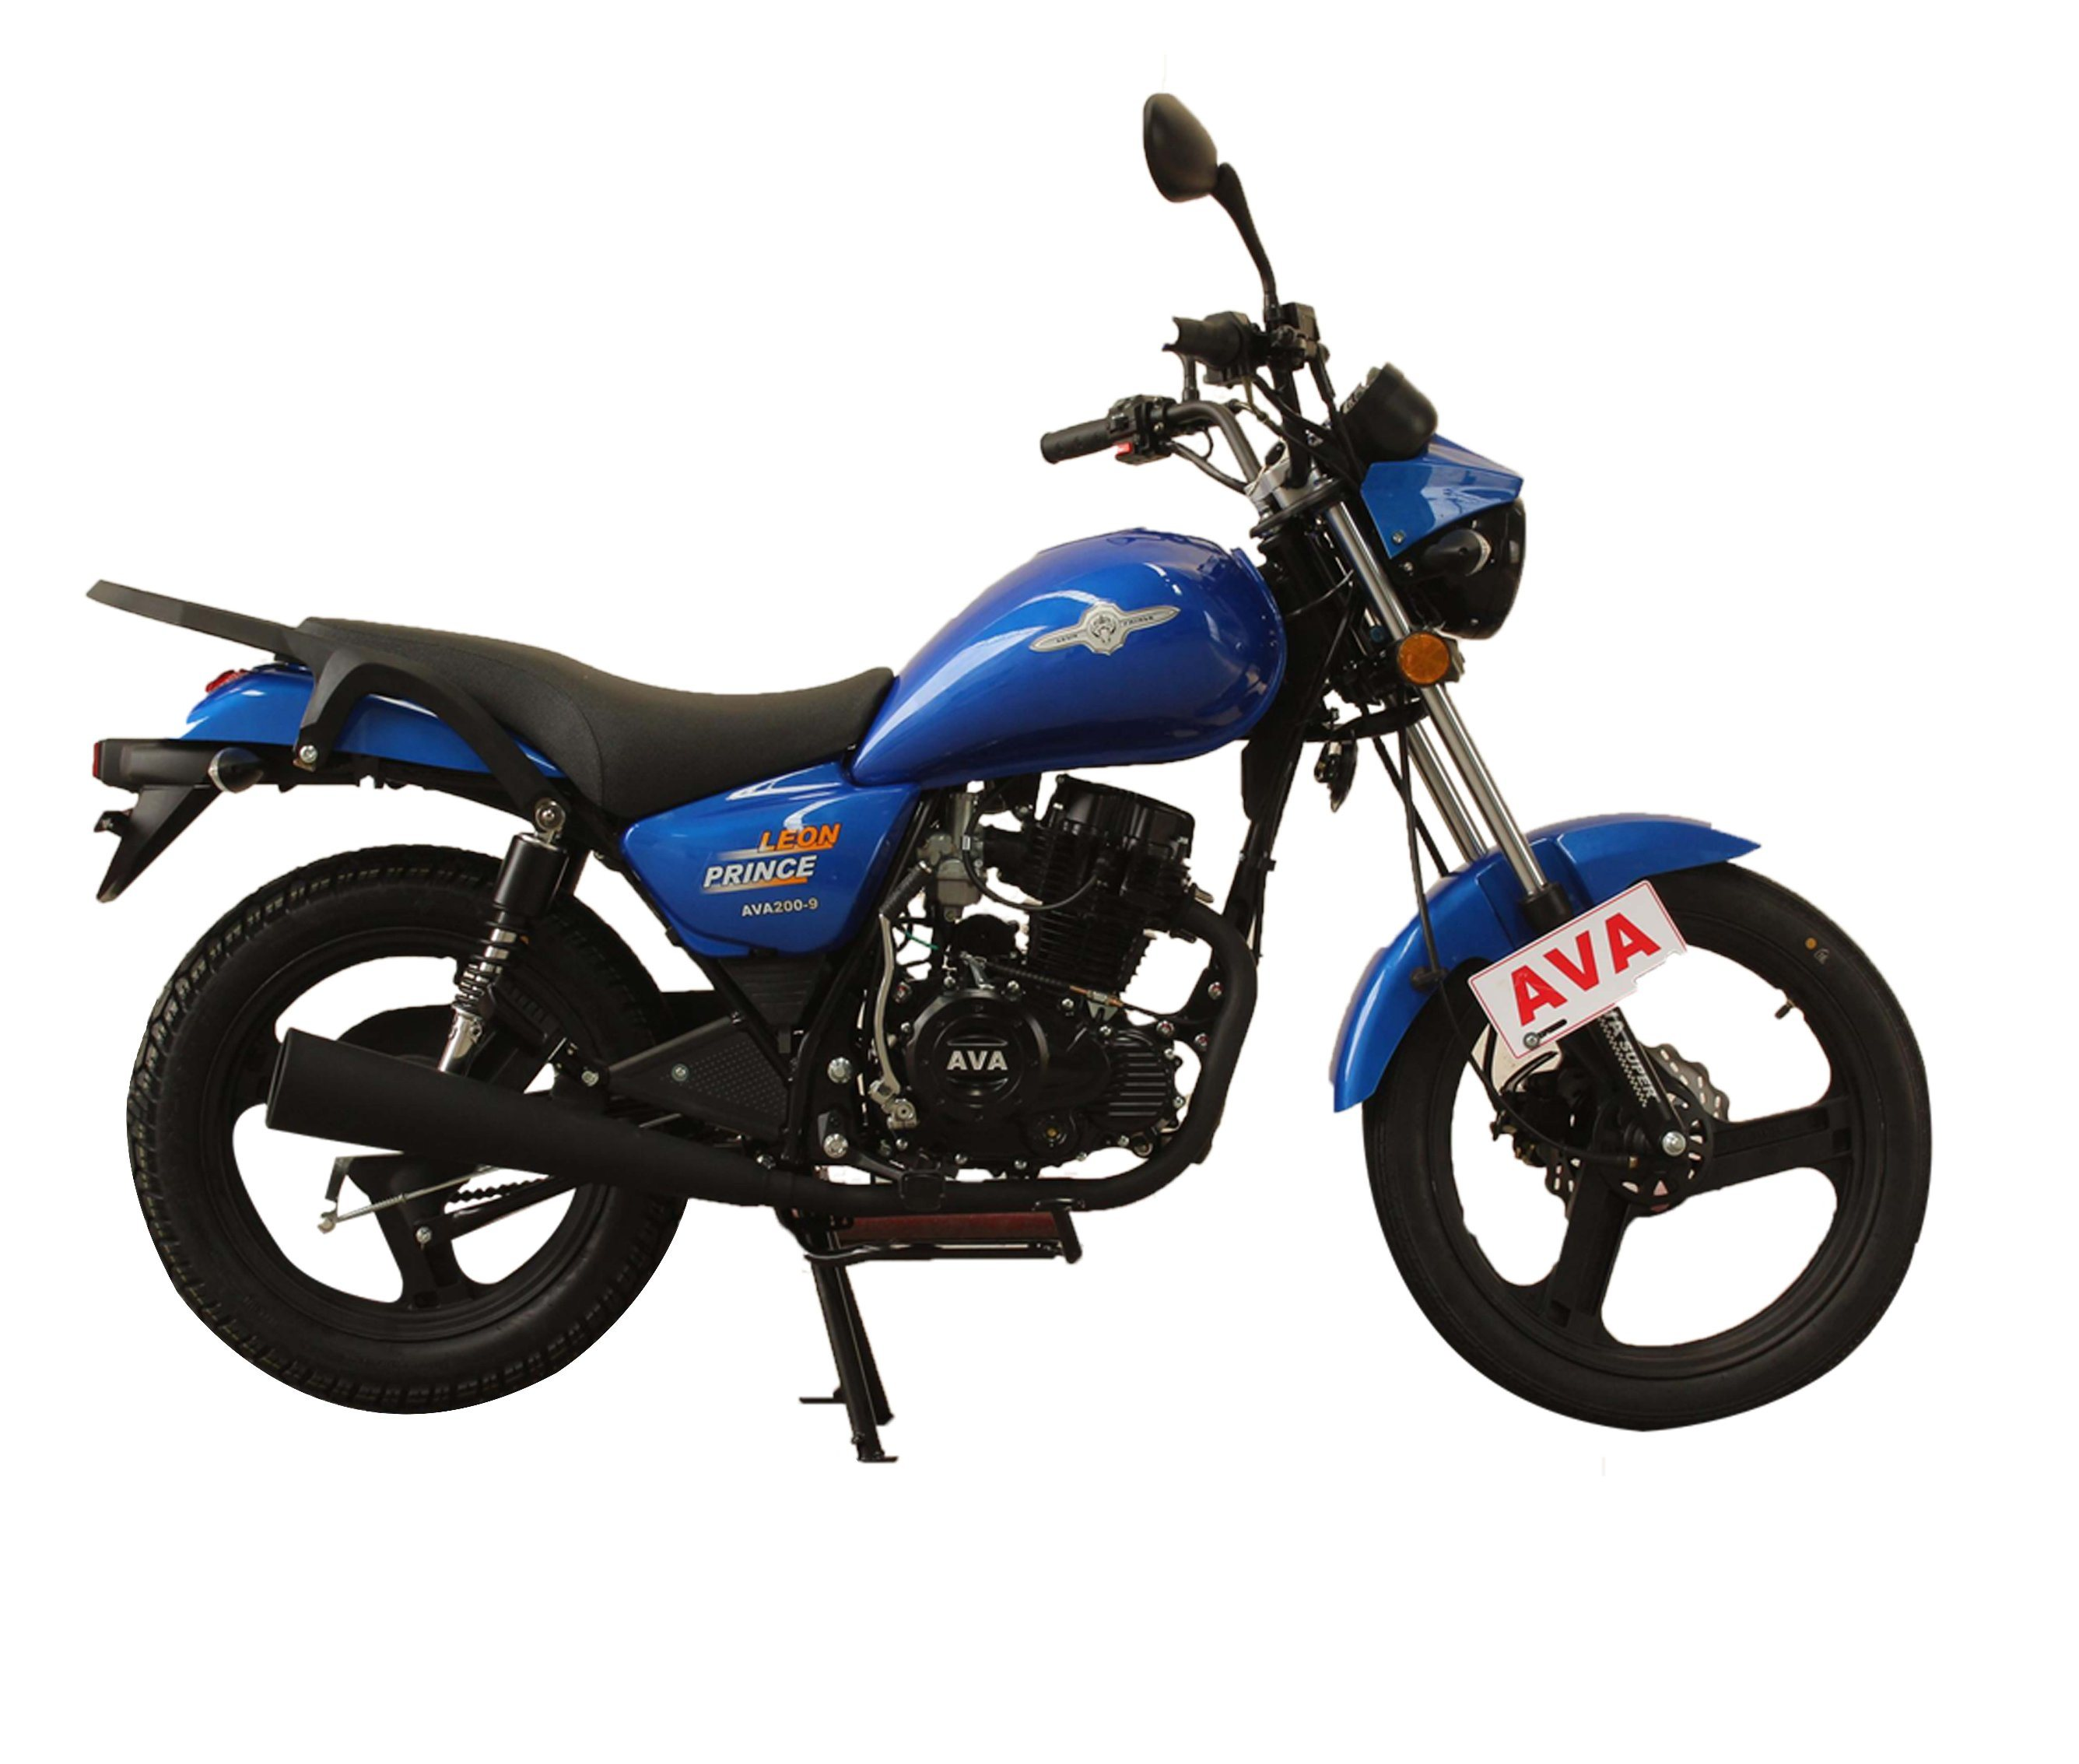 Scooter Motorcycle Ava200-9 Gas Scooter 200cc